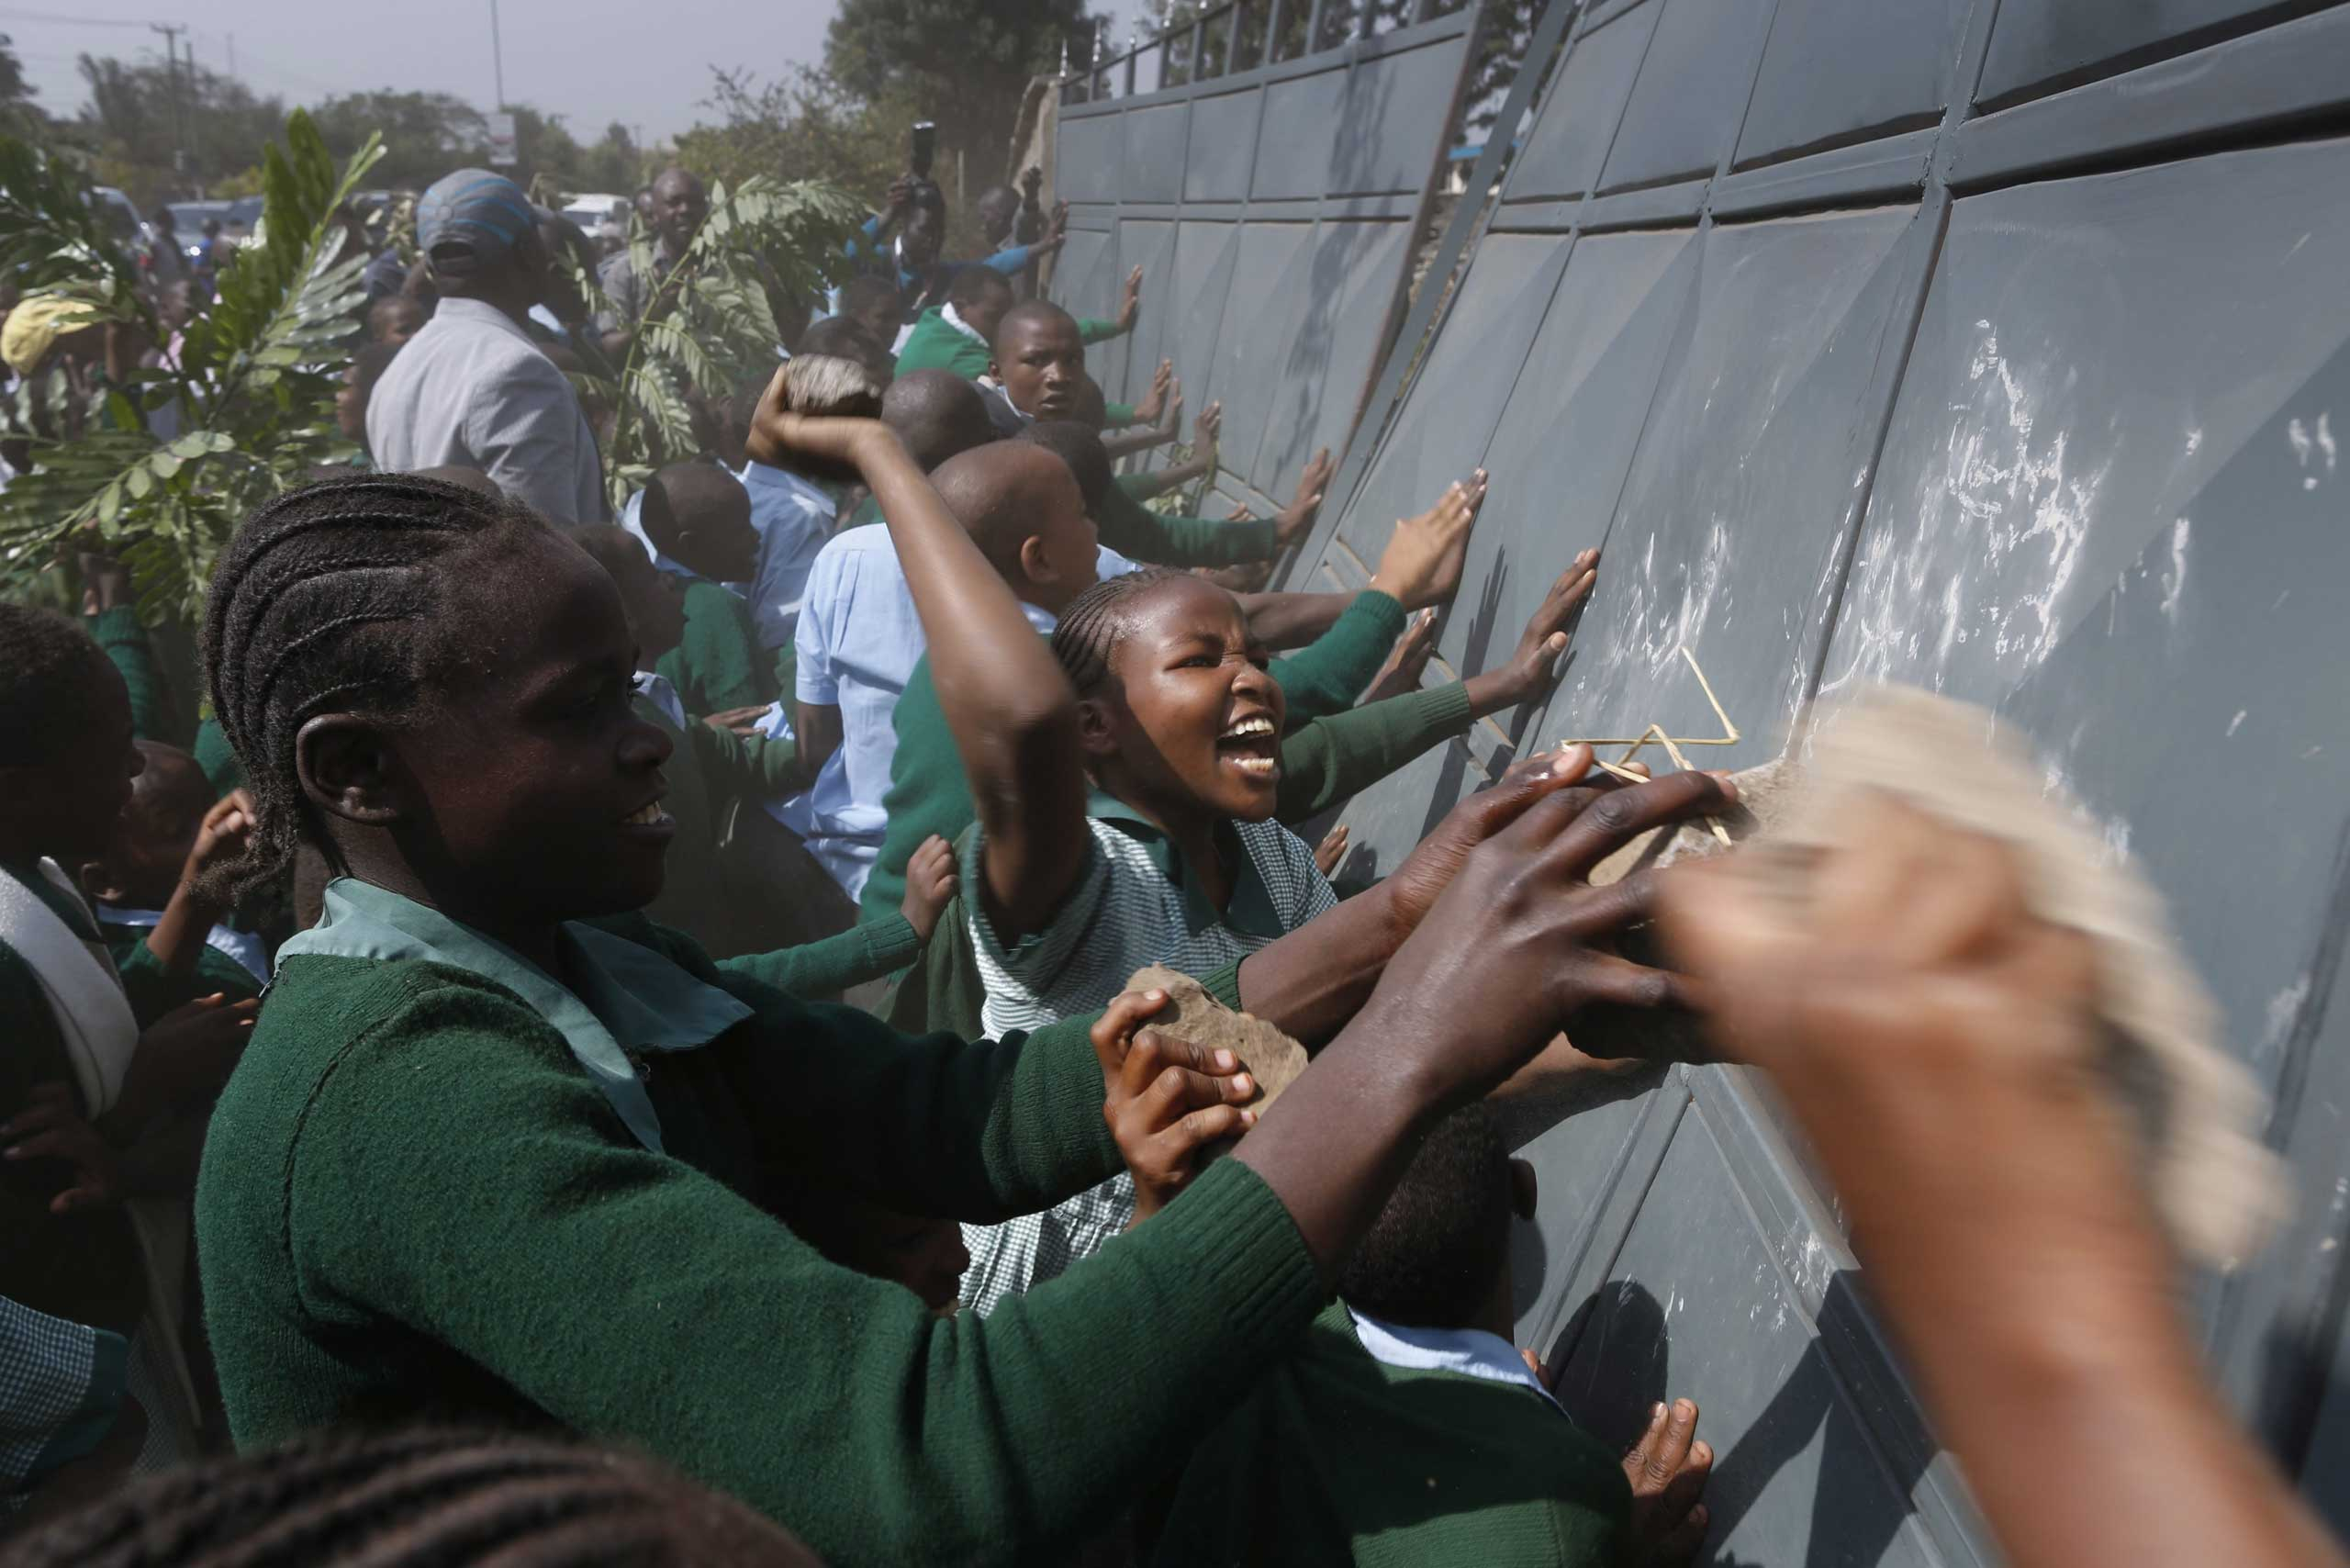 School children push the fence to enter the school playground during a protest against alleged land grabbing at Langata Road Primary School in Nairobi, Jan. 19, 2015.